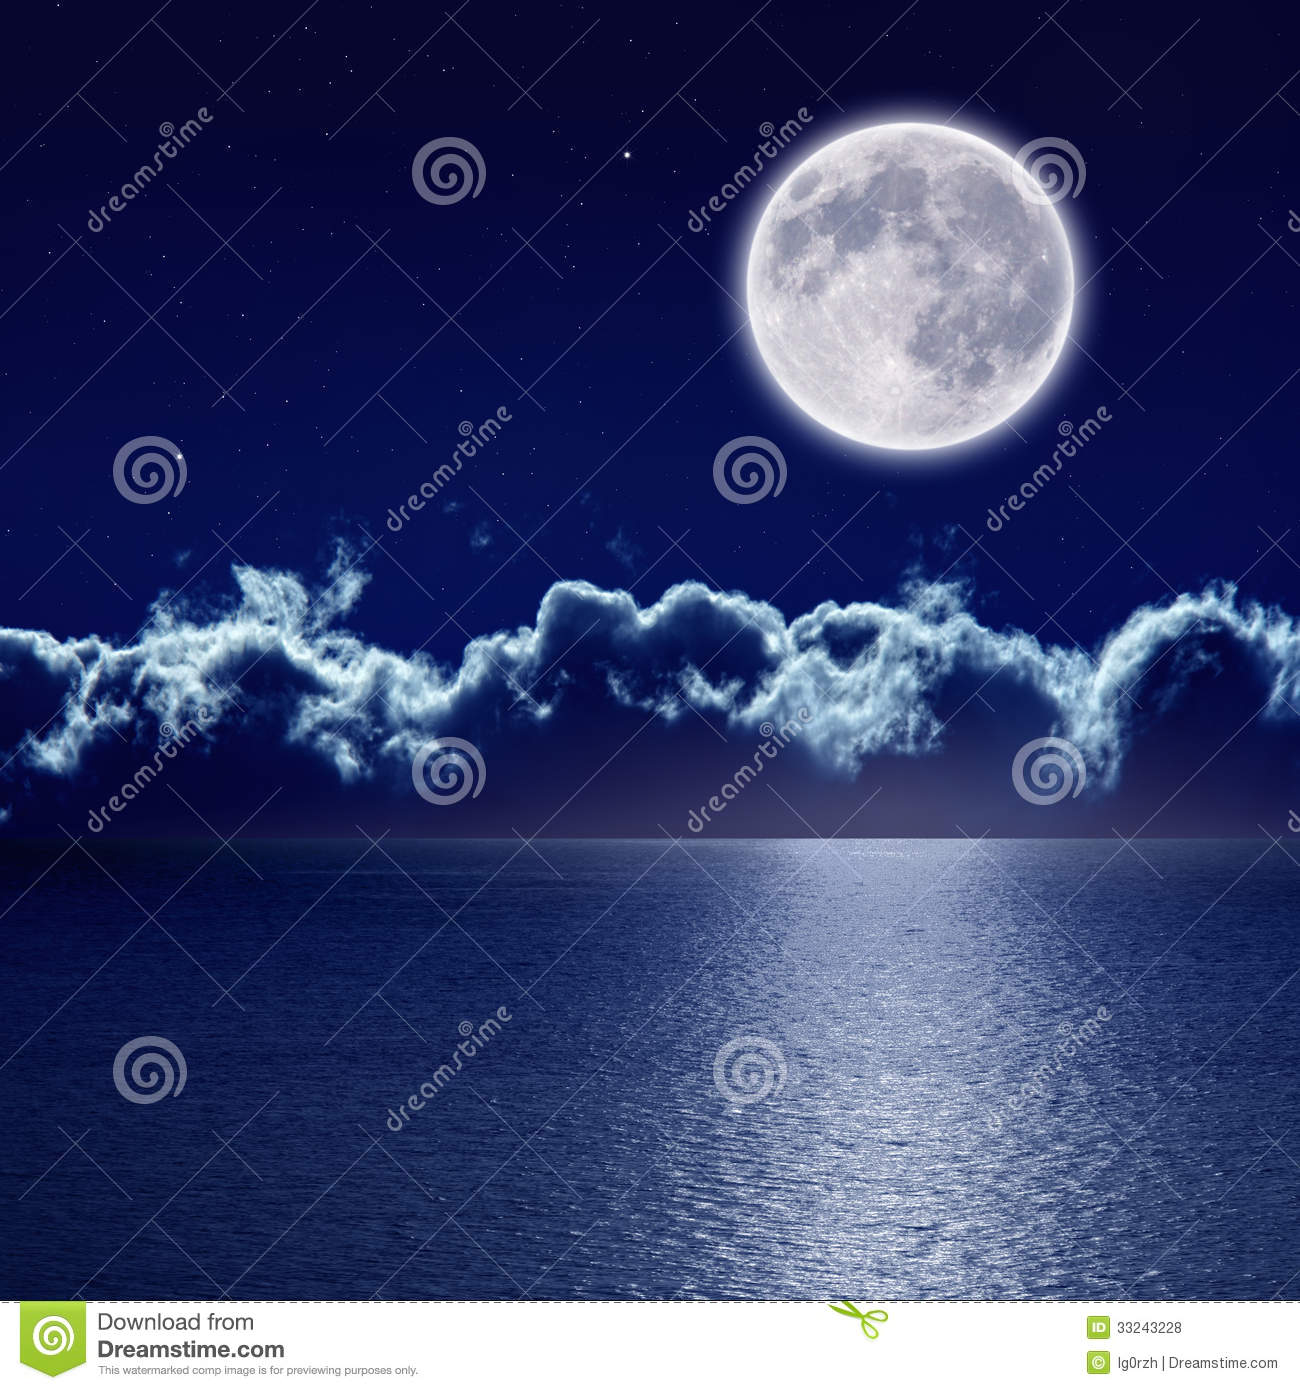 Serenity Blue Paint Full Moon Over Sea Royalty Free Stock Photos Image 33243228